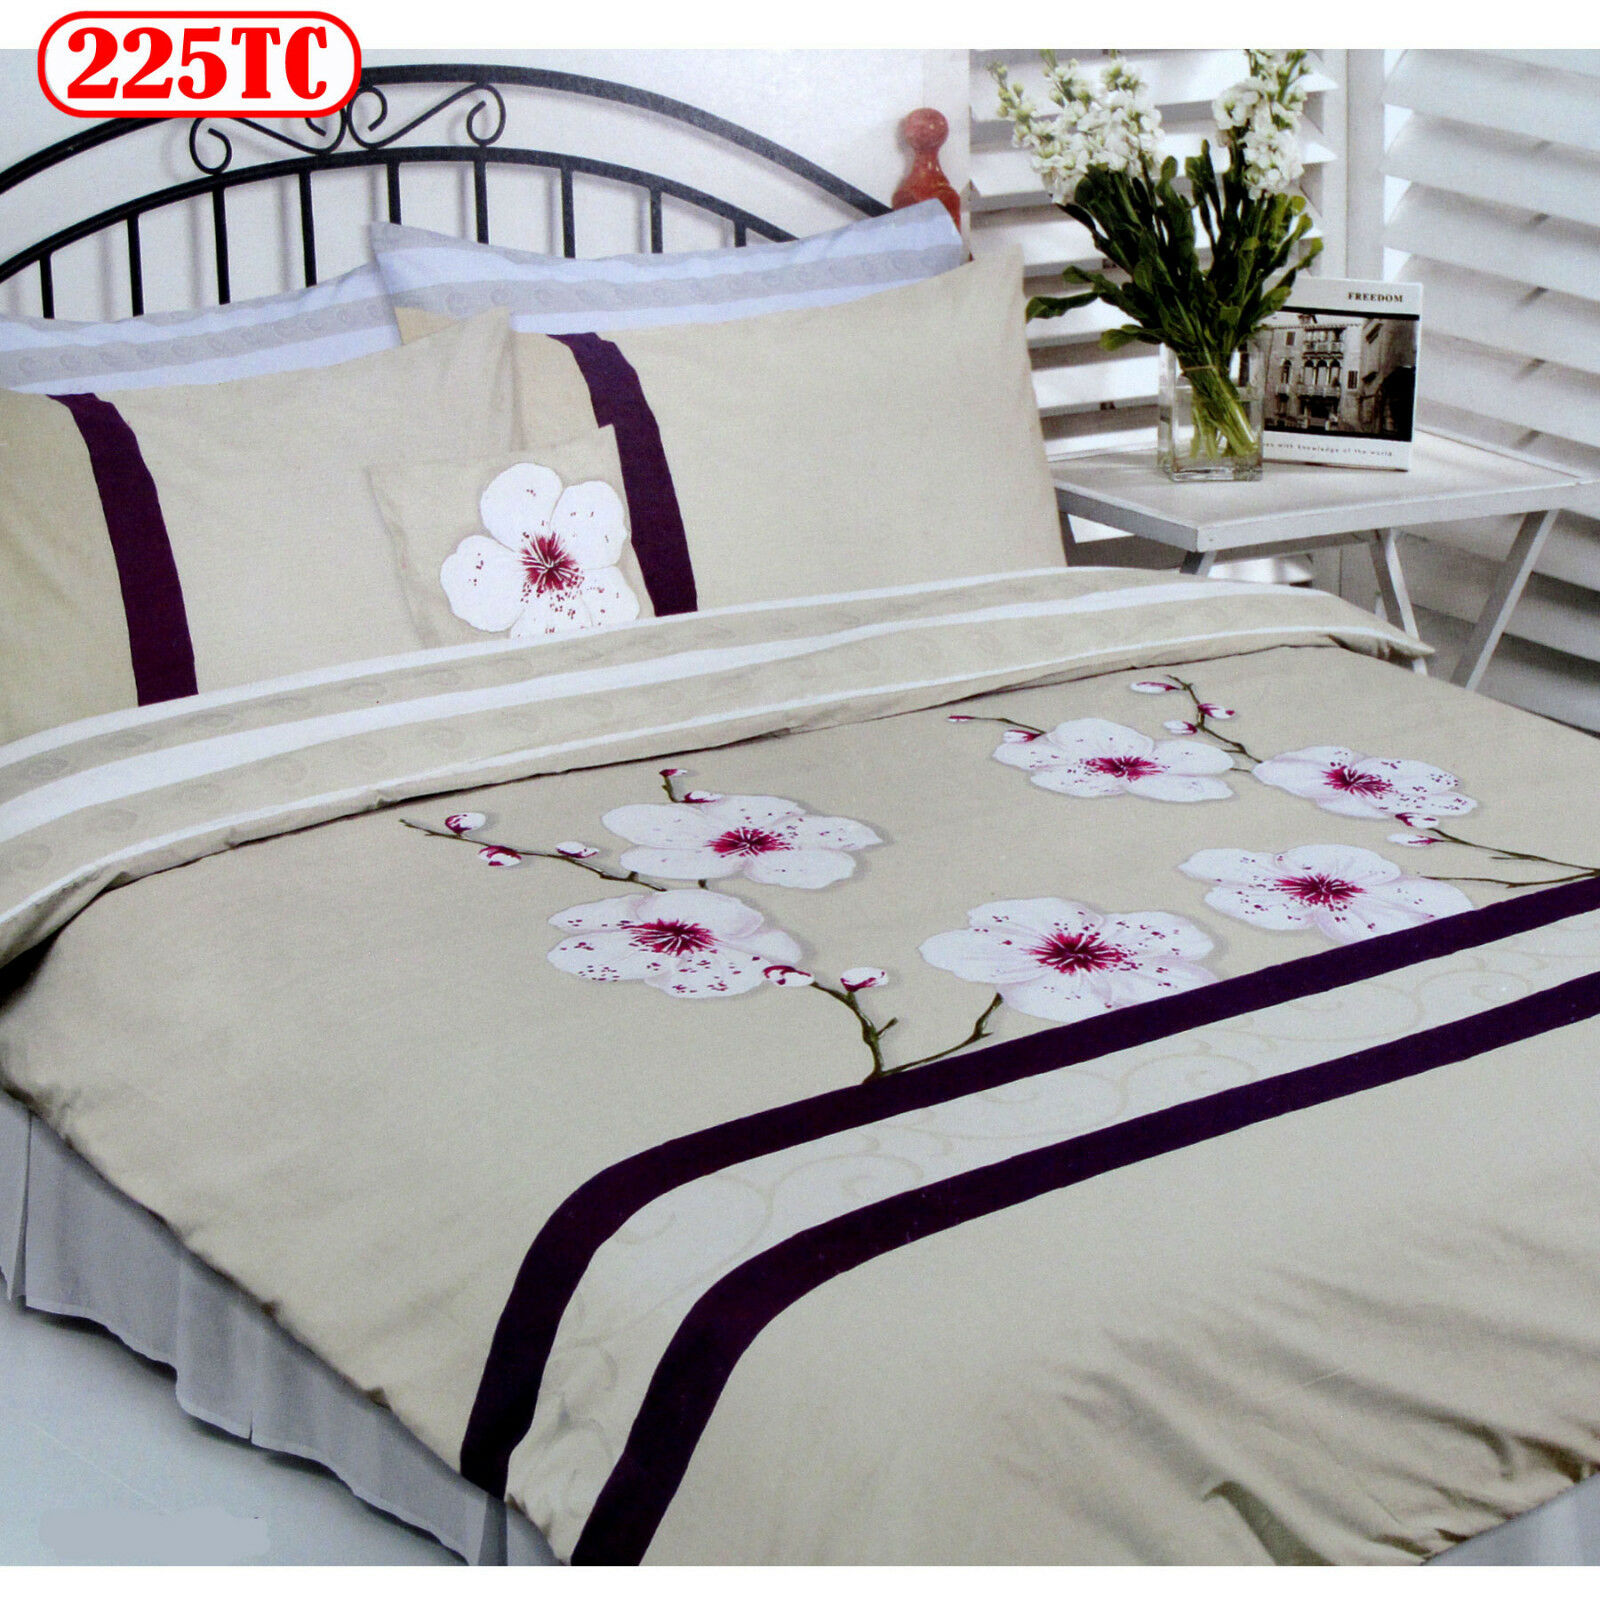 225TC CHERRY BLOSSOM Quilt   Duvet Cover Set - DOUBLE QUEEN KING or Cushion